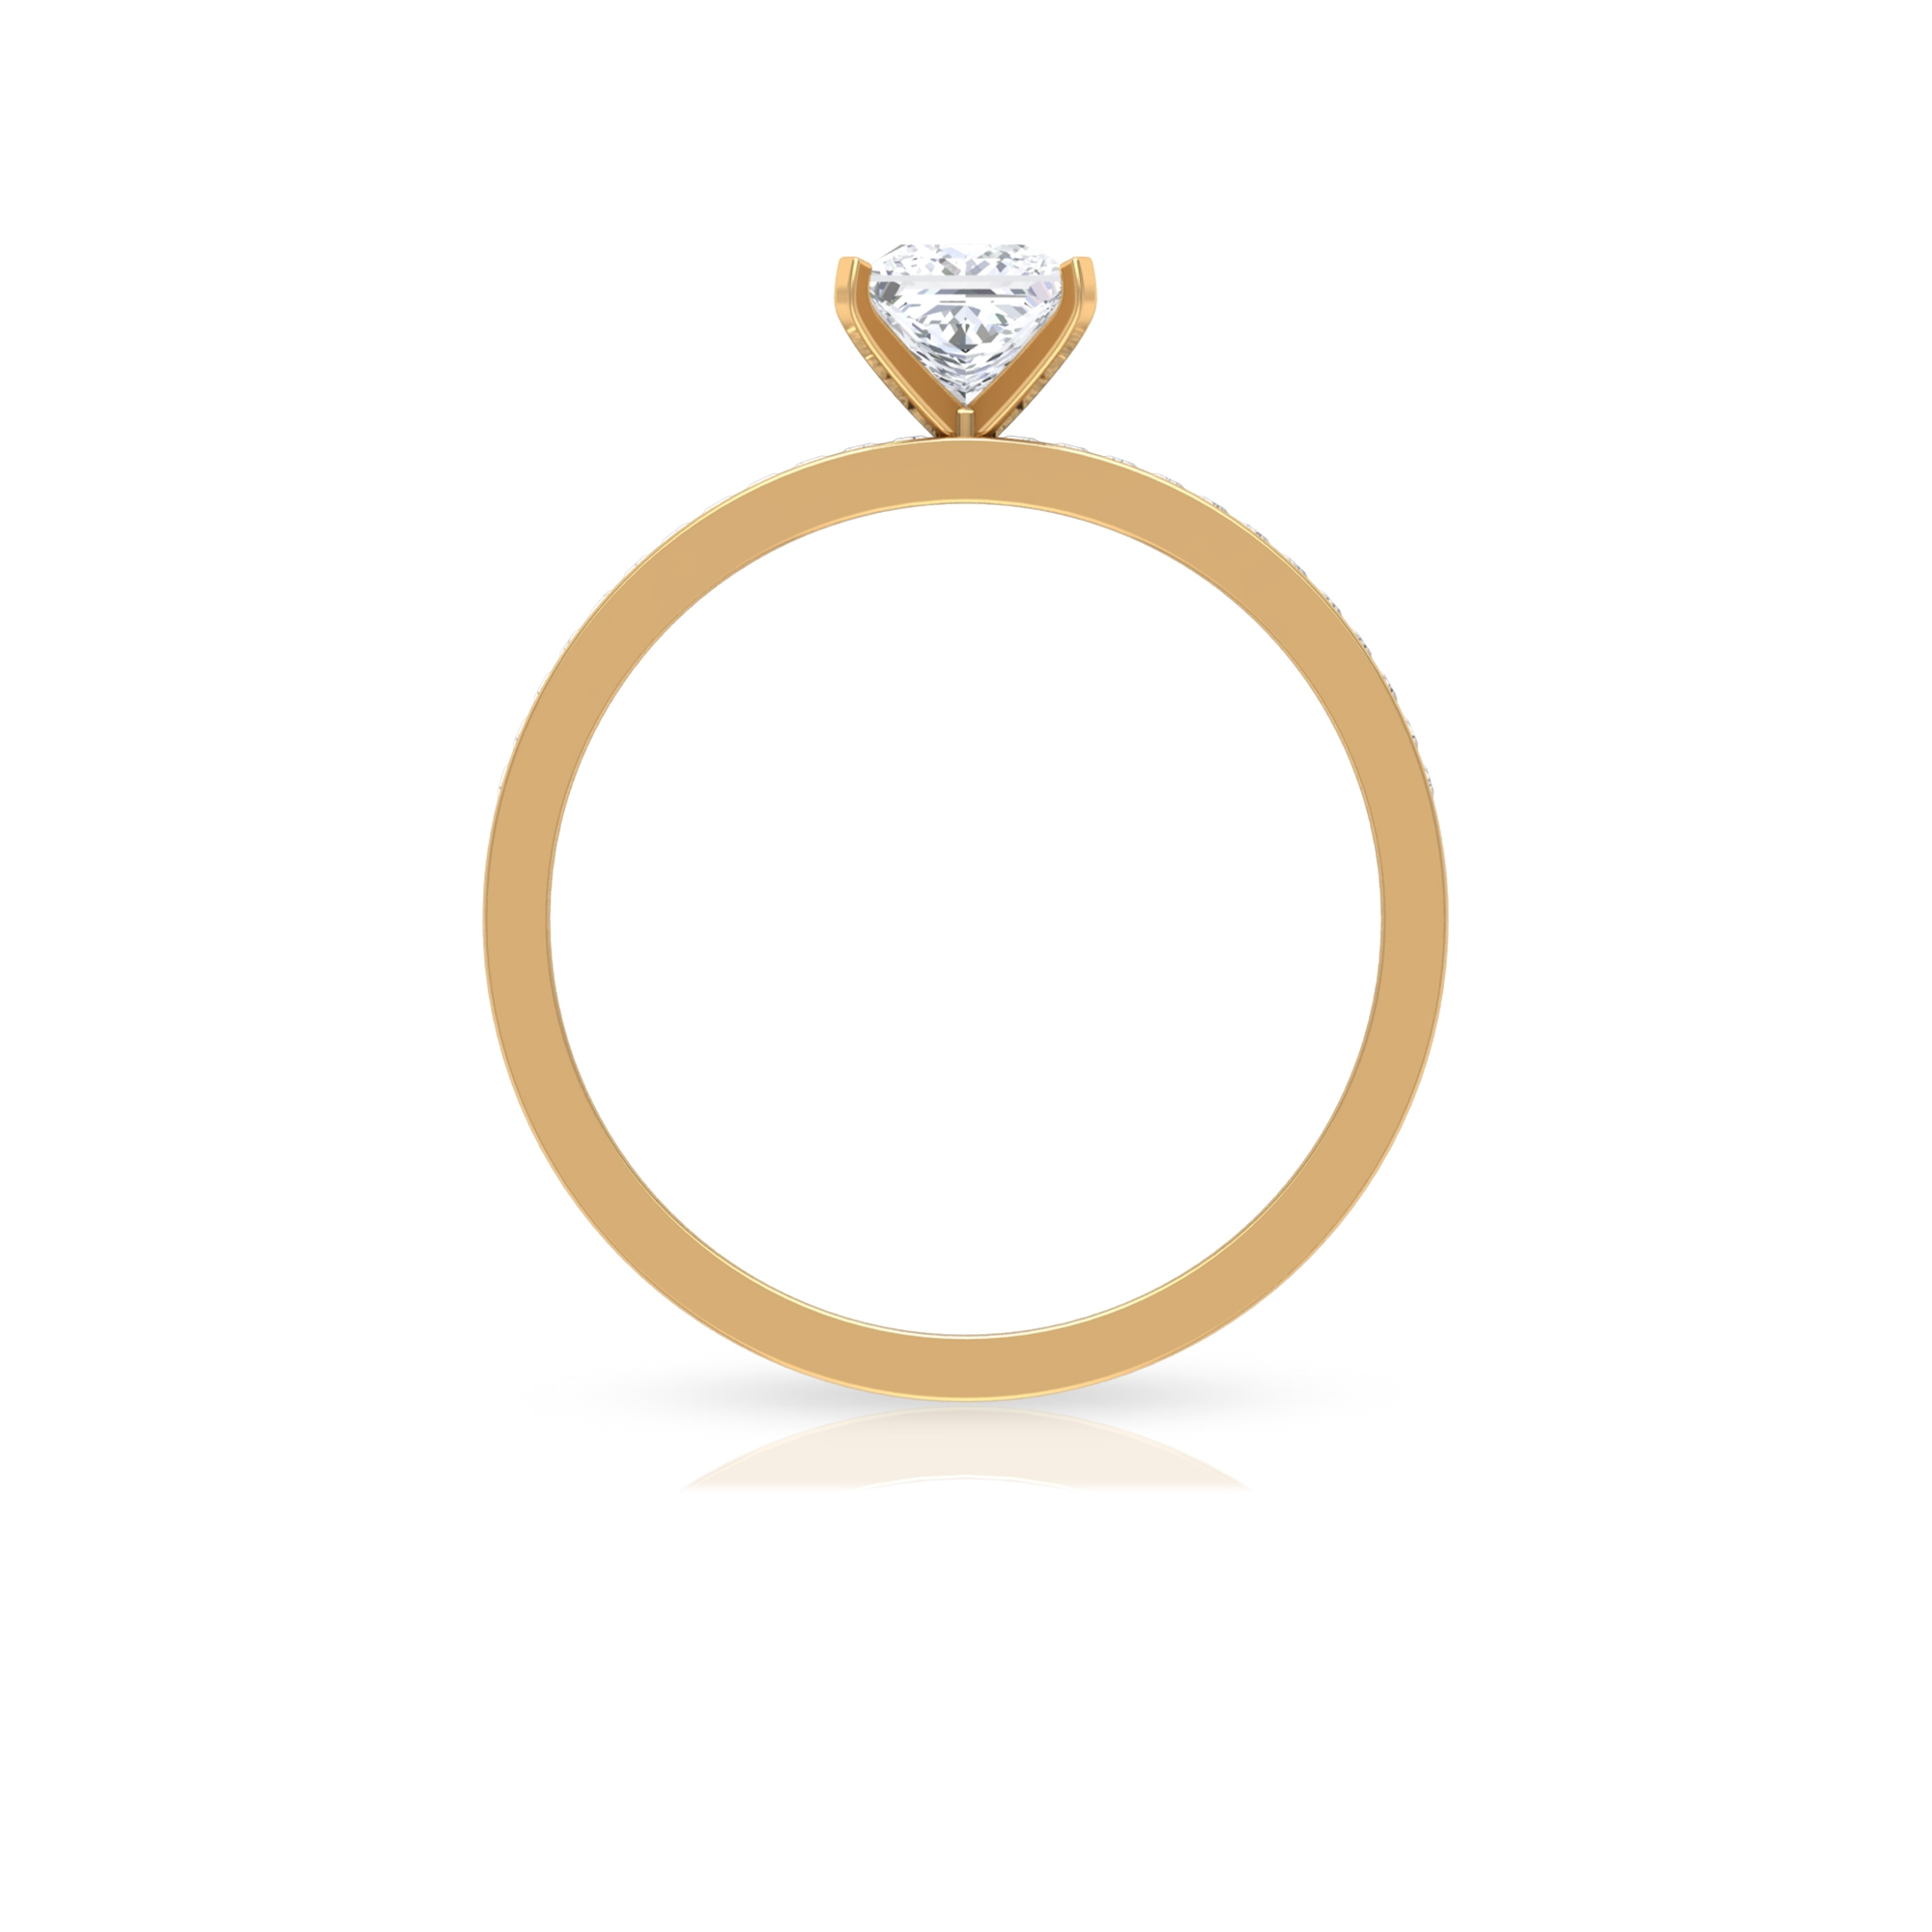 Square Prong Set 4.5 MM Princess Cut Diamond Solitaire Ring with Channel Set Side Stones